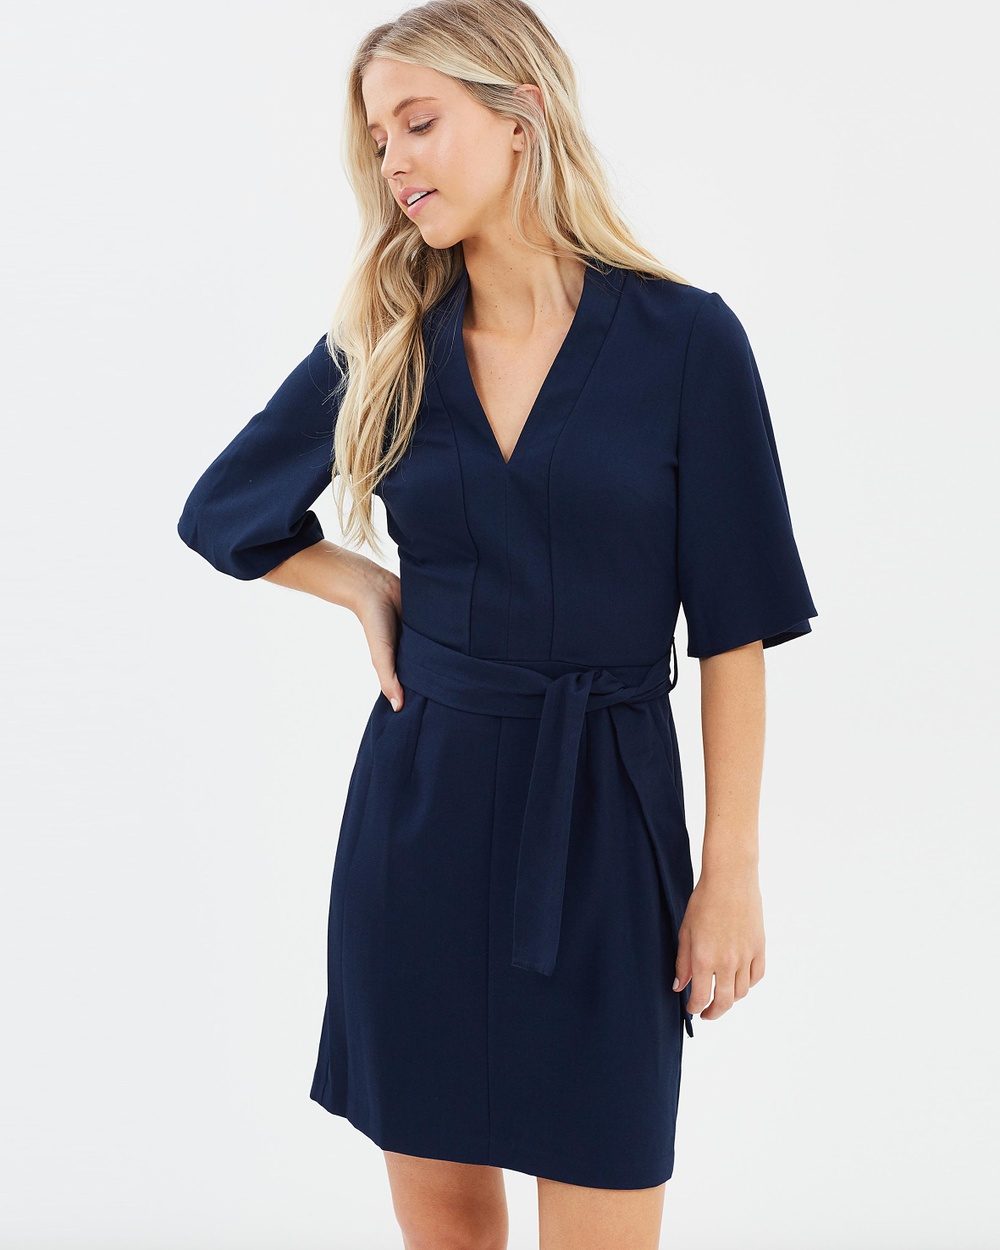 Miss Selfridge Self Tie Kimono Sleeve Dress Dresses Navy Self-Tie Kimono Sleeve Dress